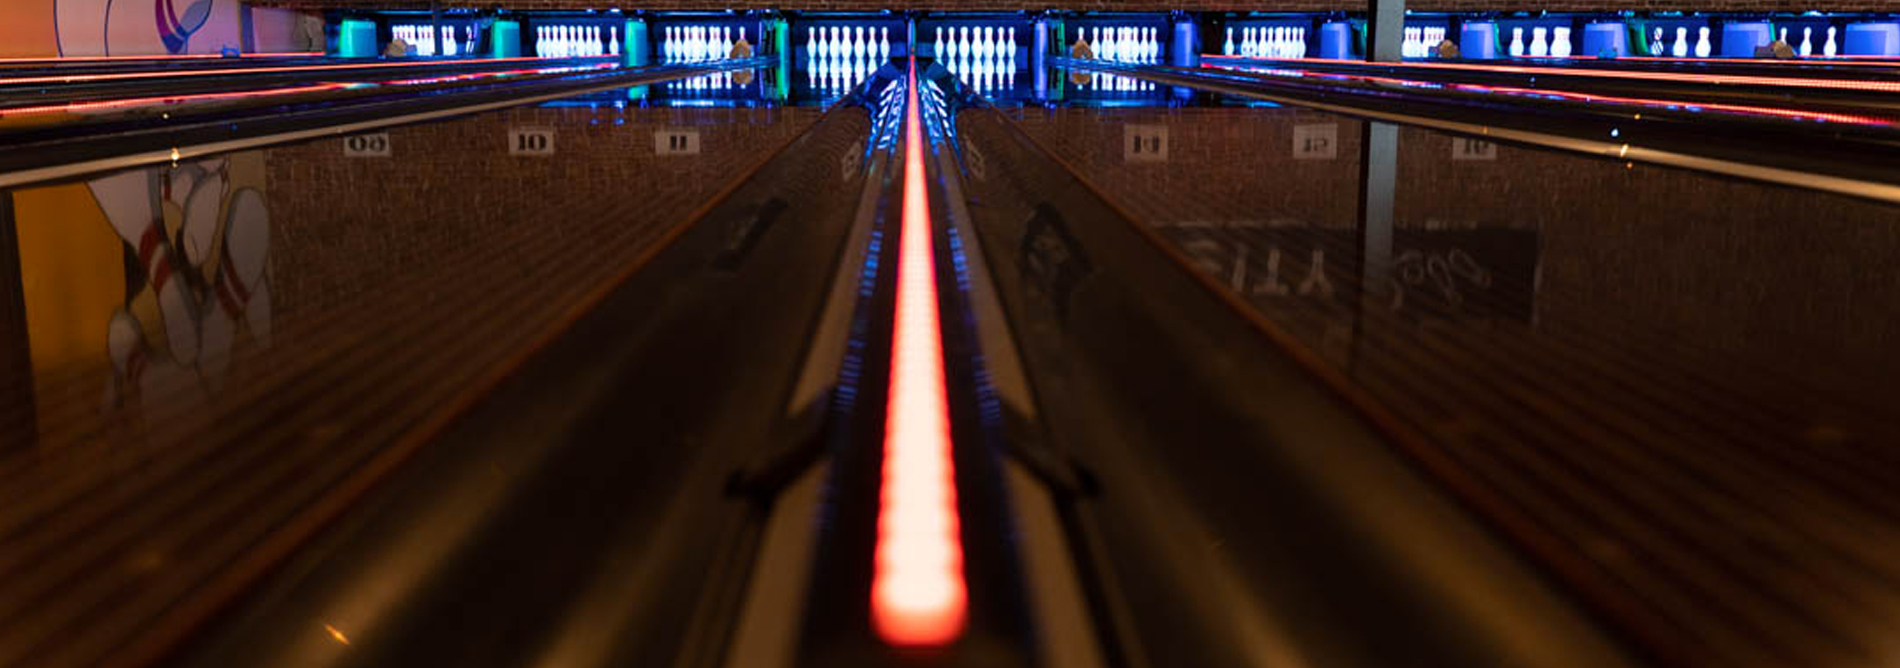 Bowling-QubicaAMF-capping-light-2019-banner.jpg